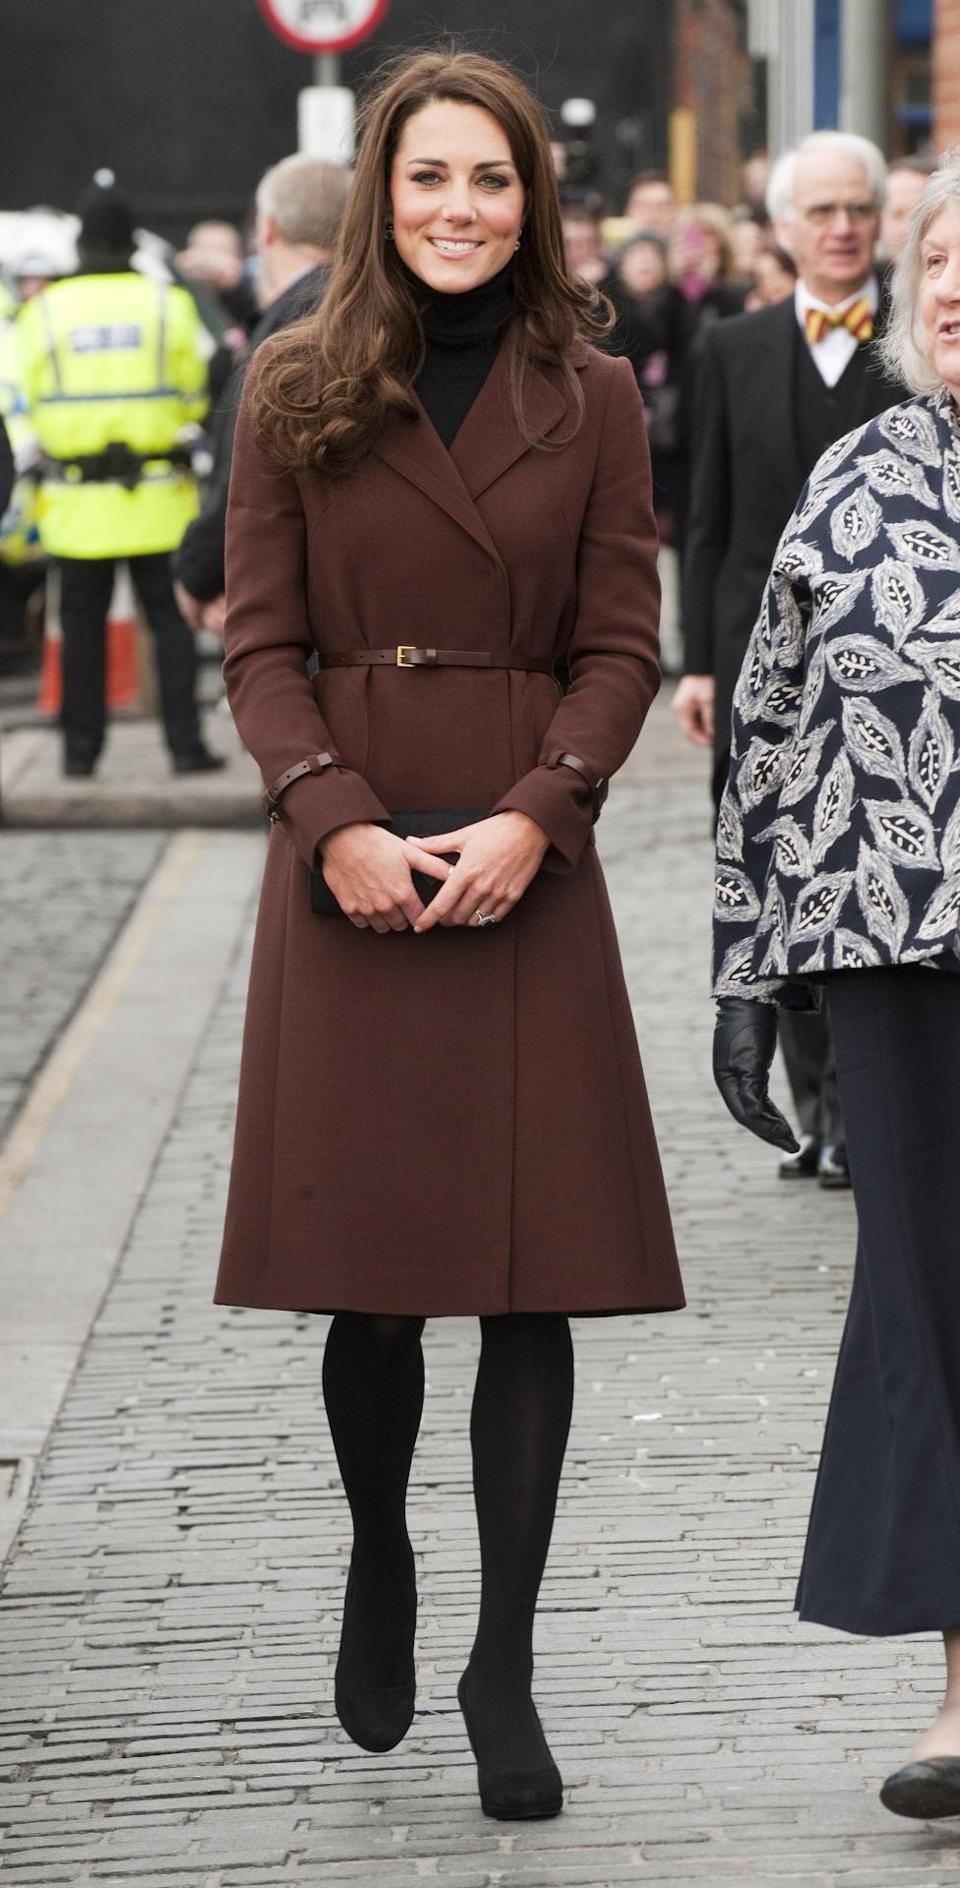 <p>Kate visited Liverpool wearing a chic brown Hobbs coat worn with a black knee length Oasis dress. She paired the look with black tights, a Stuart Weitzman clutch and and matching shoes. </p><p><i>[Photo: PA]</i></p>